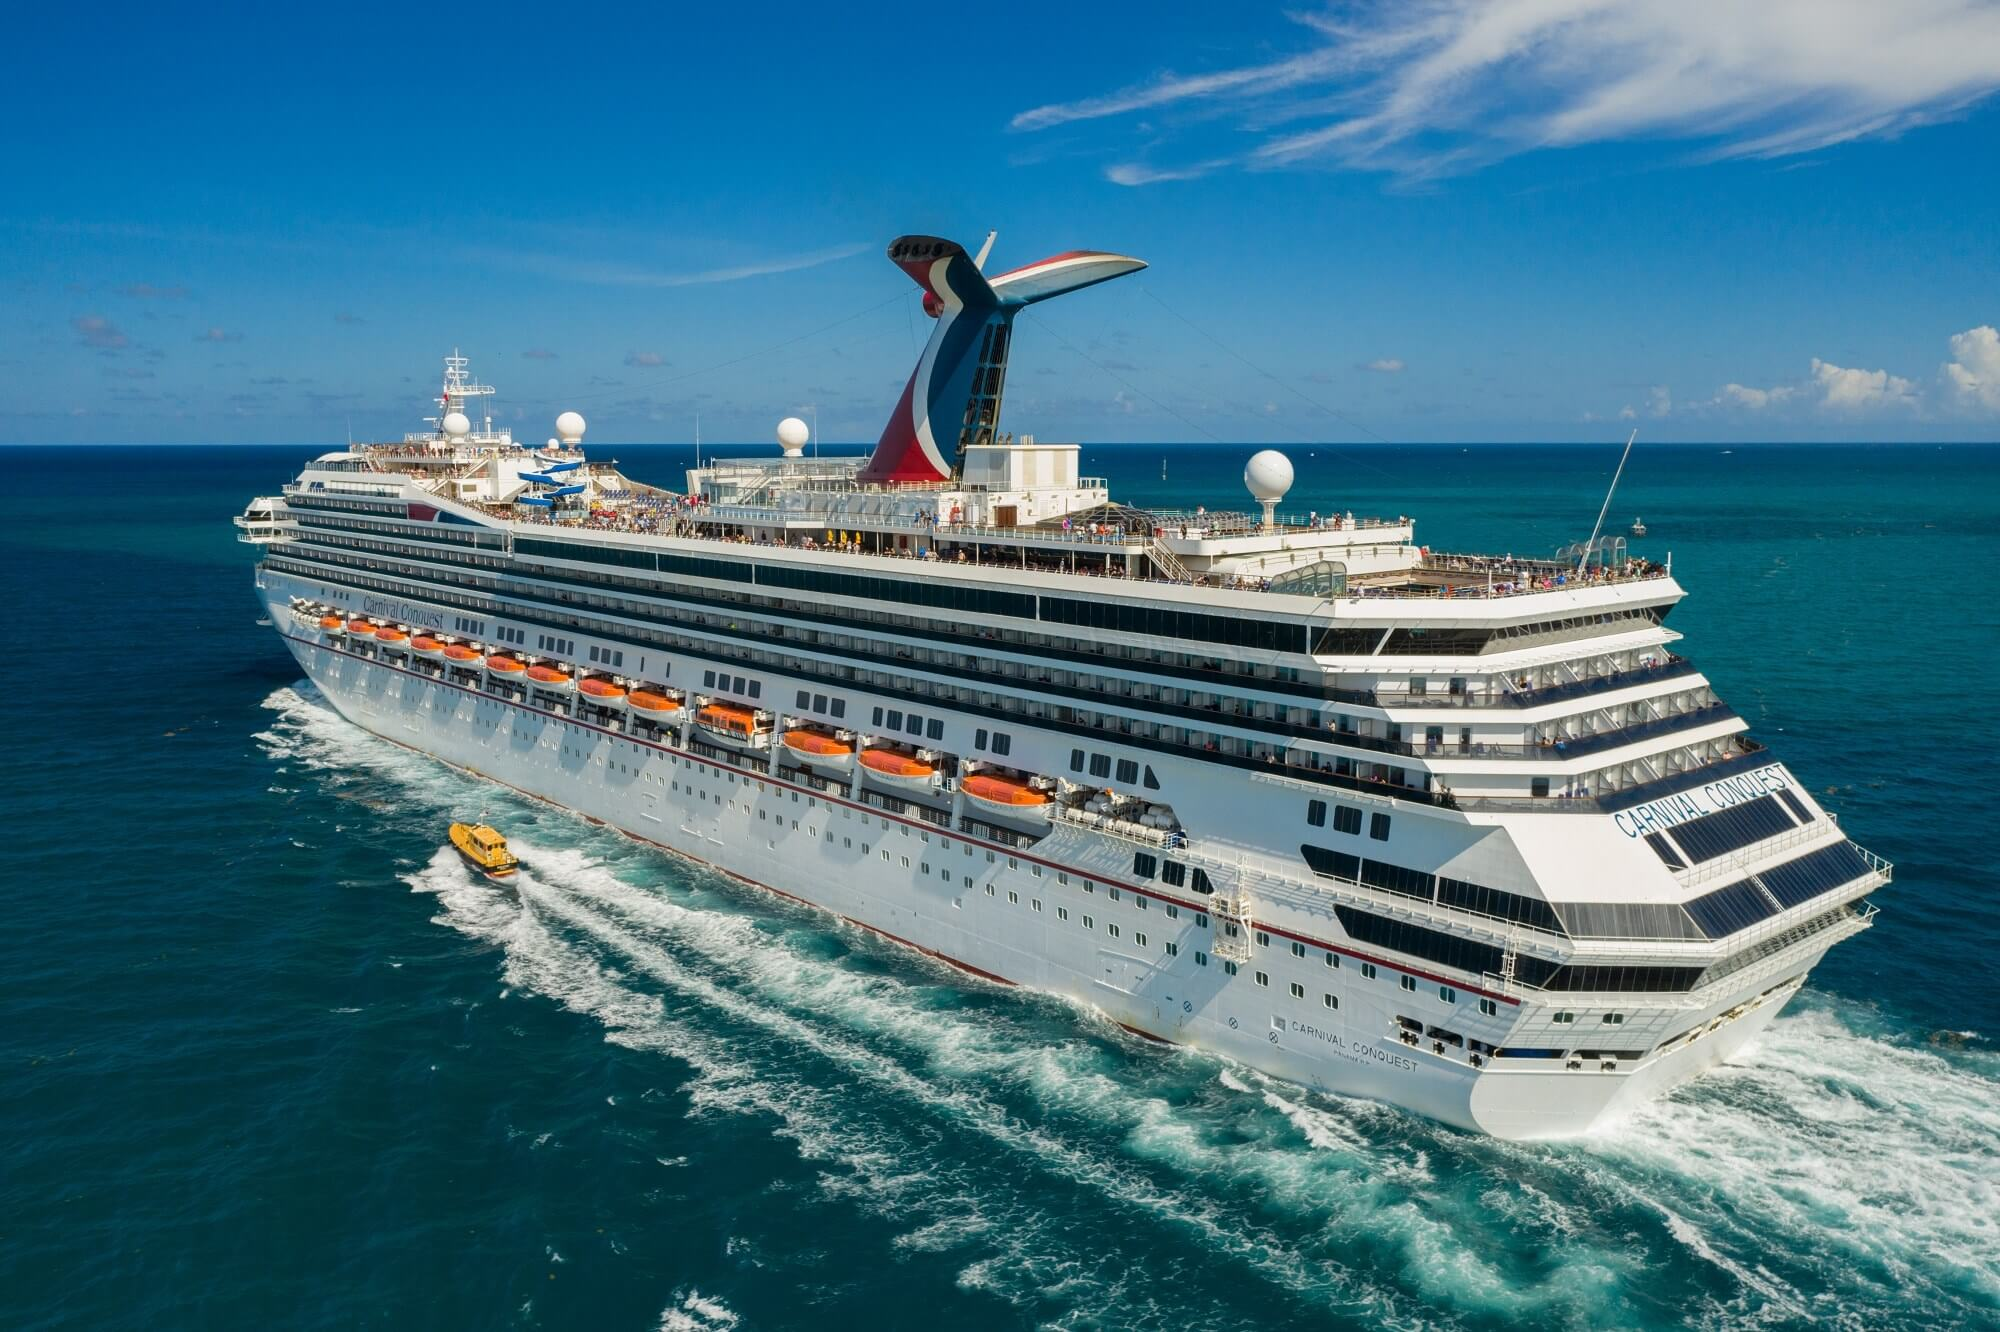 Cruise line giant Carnival Corp. suffers ransomware attack, customer data accessed